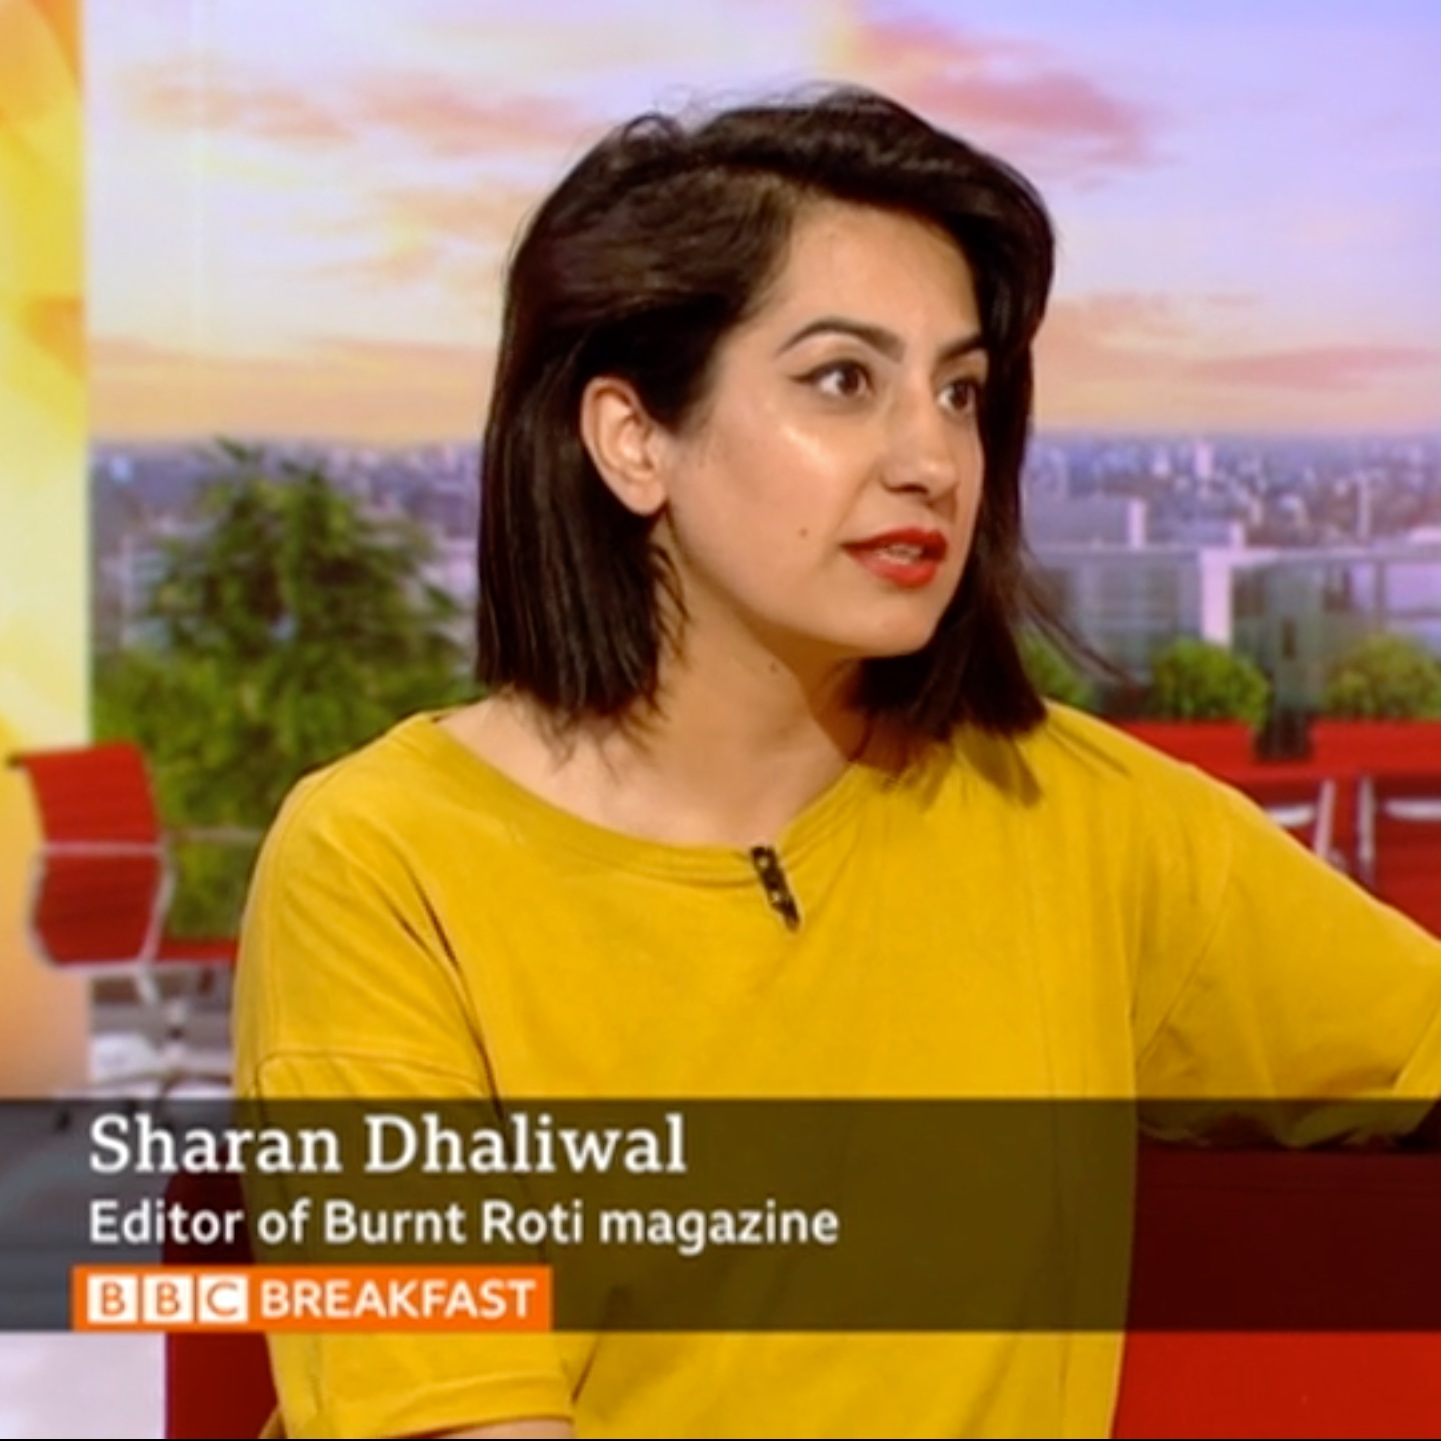 BBC Breakfast - Newspaper reviews, talking about the women in space, gender identities, rogue landlords and cyborgs!